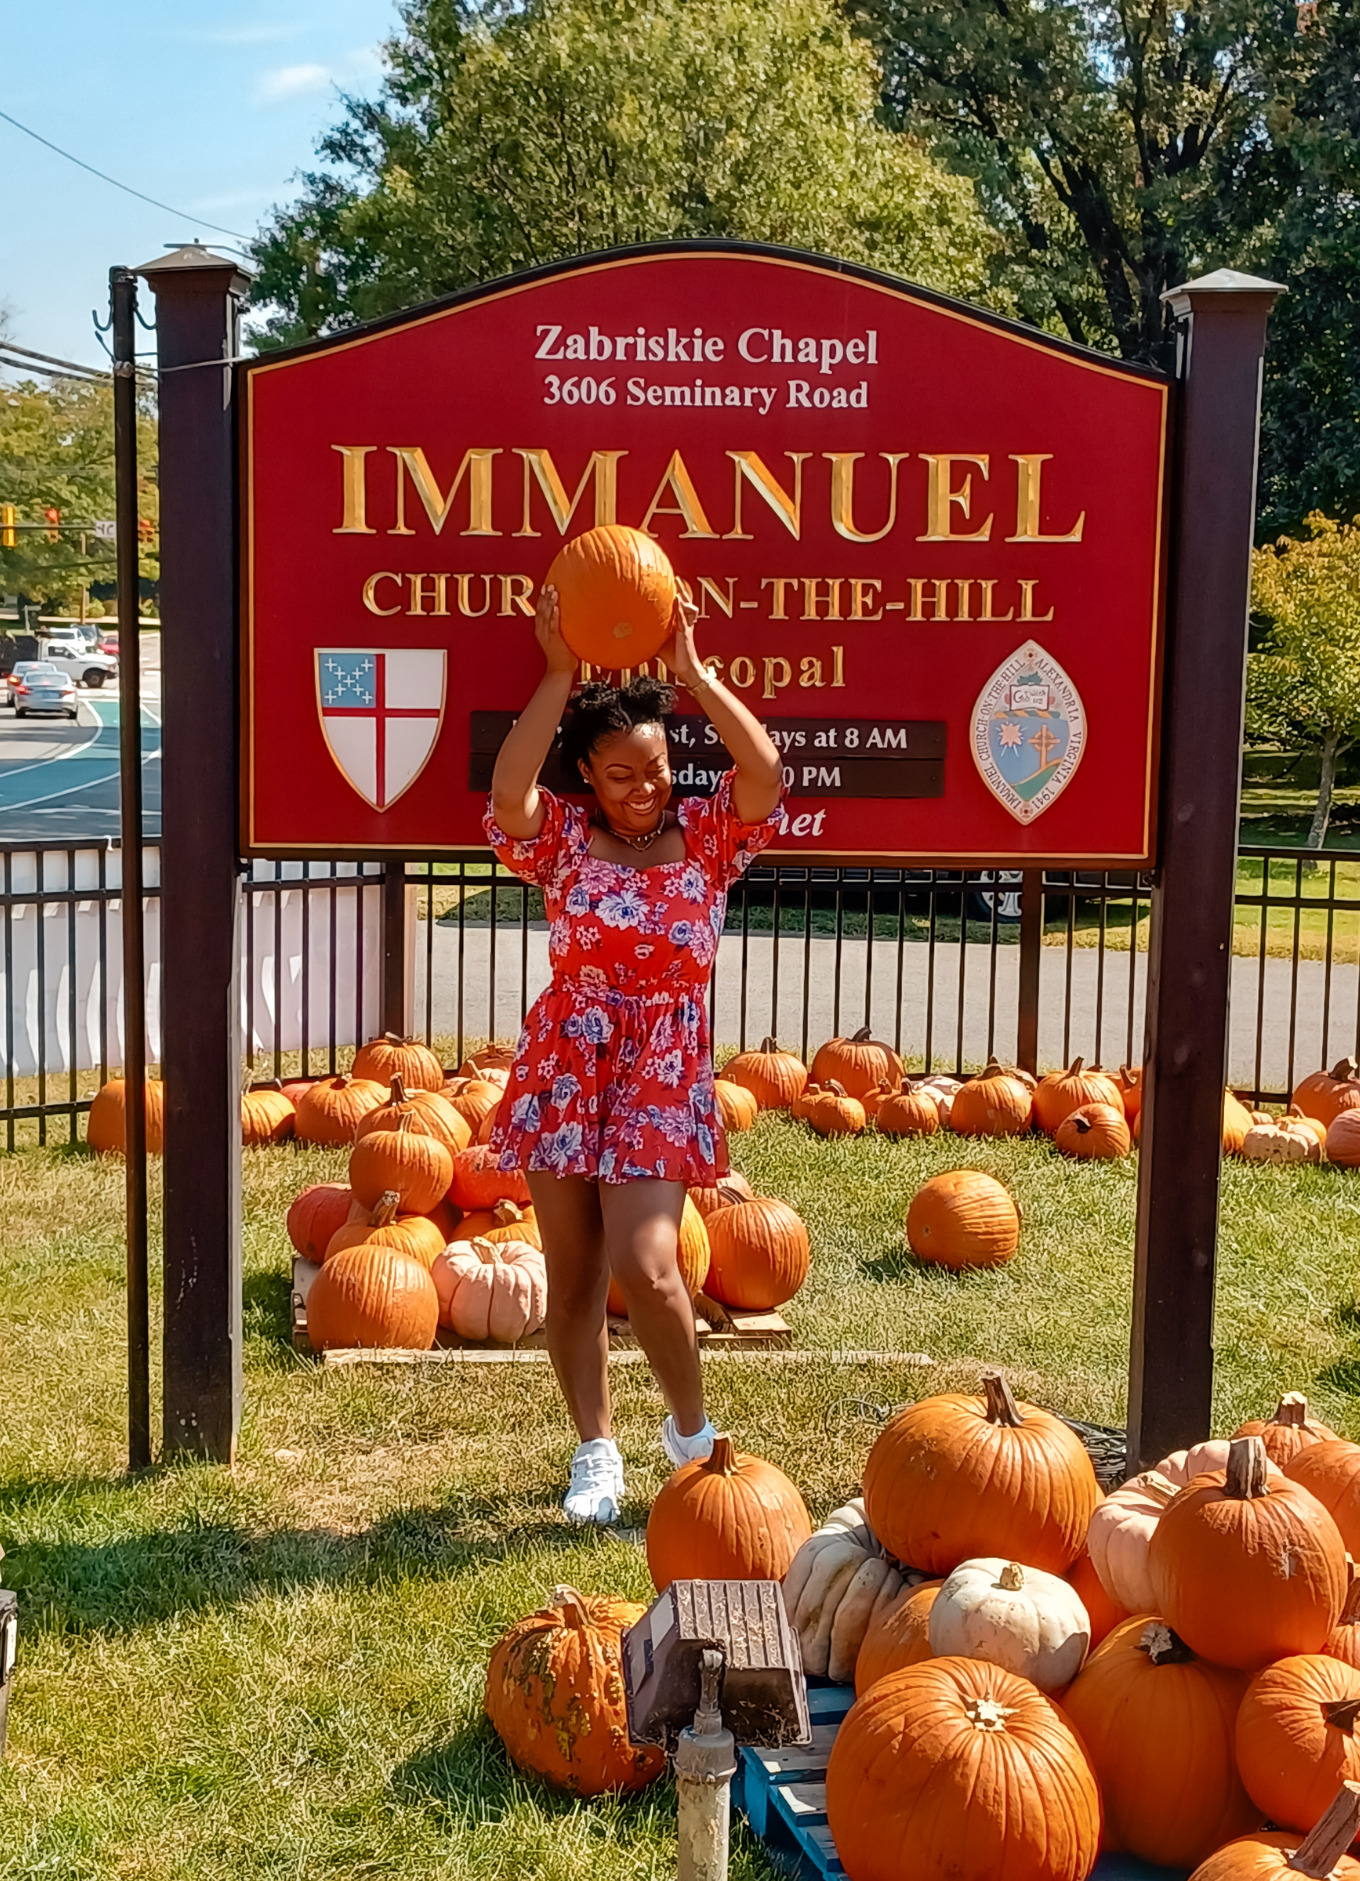 Washington DC-based blogger, Rogan poses while holding a pumpkin above her head.